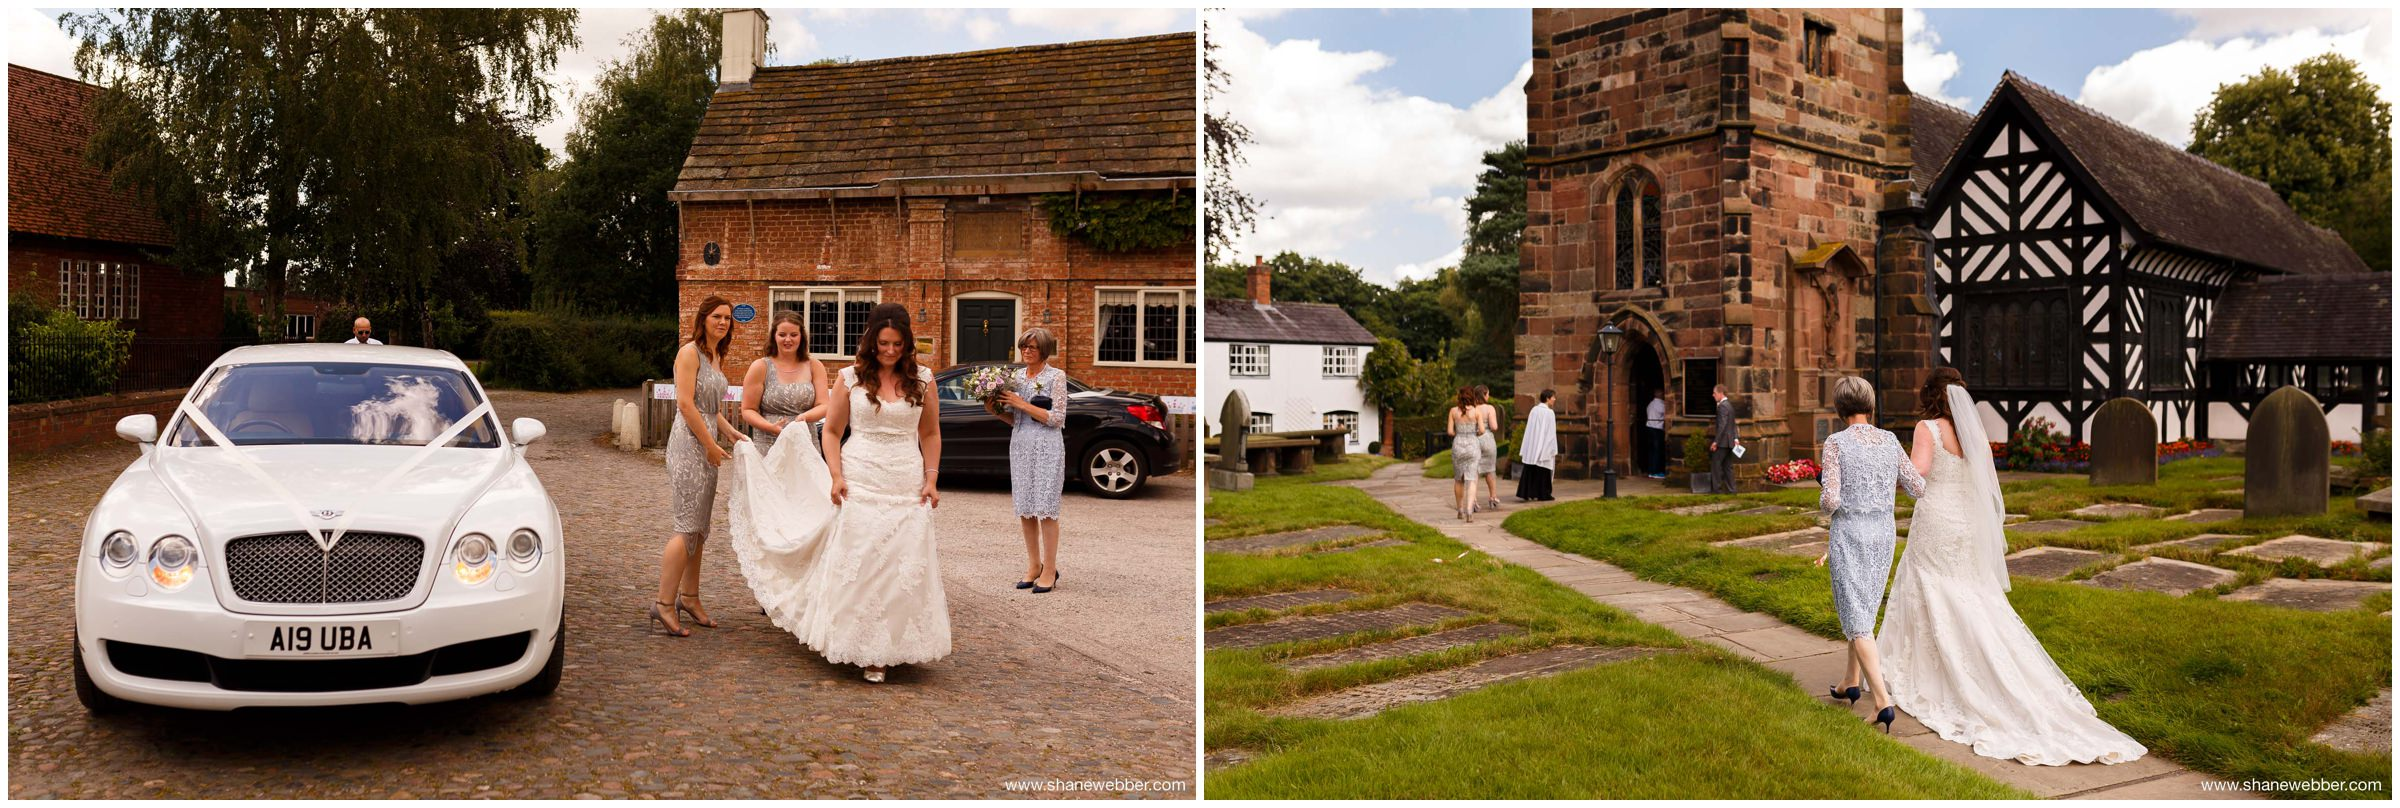 Bride walking to Church on wedding day